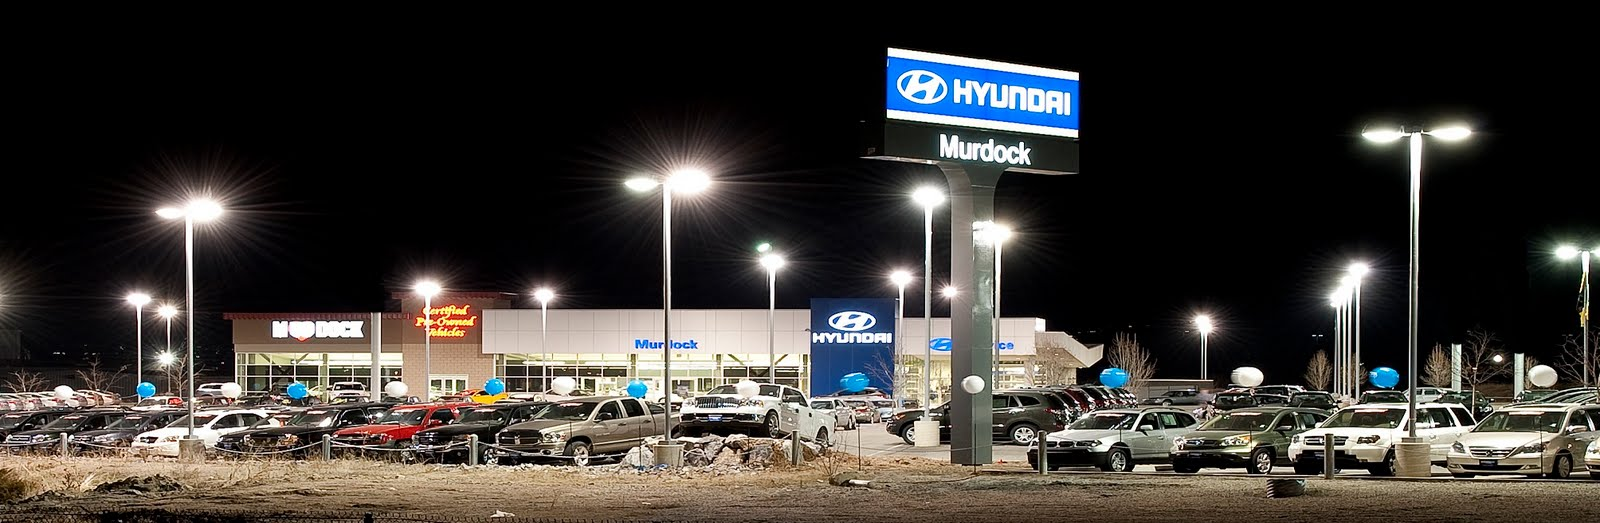 Utah&#39;s #1 Hyundai Dealer